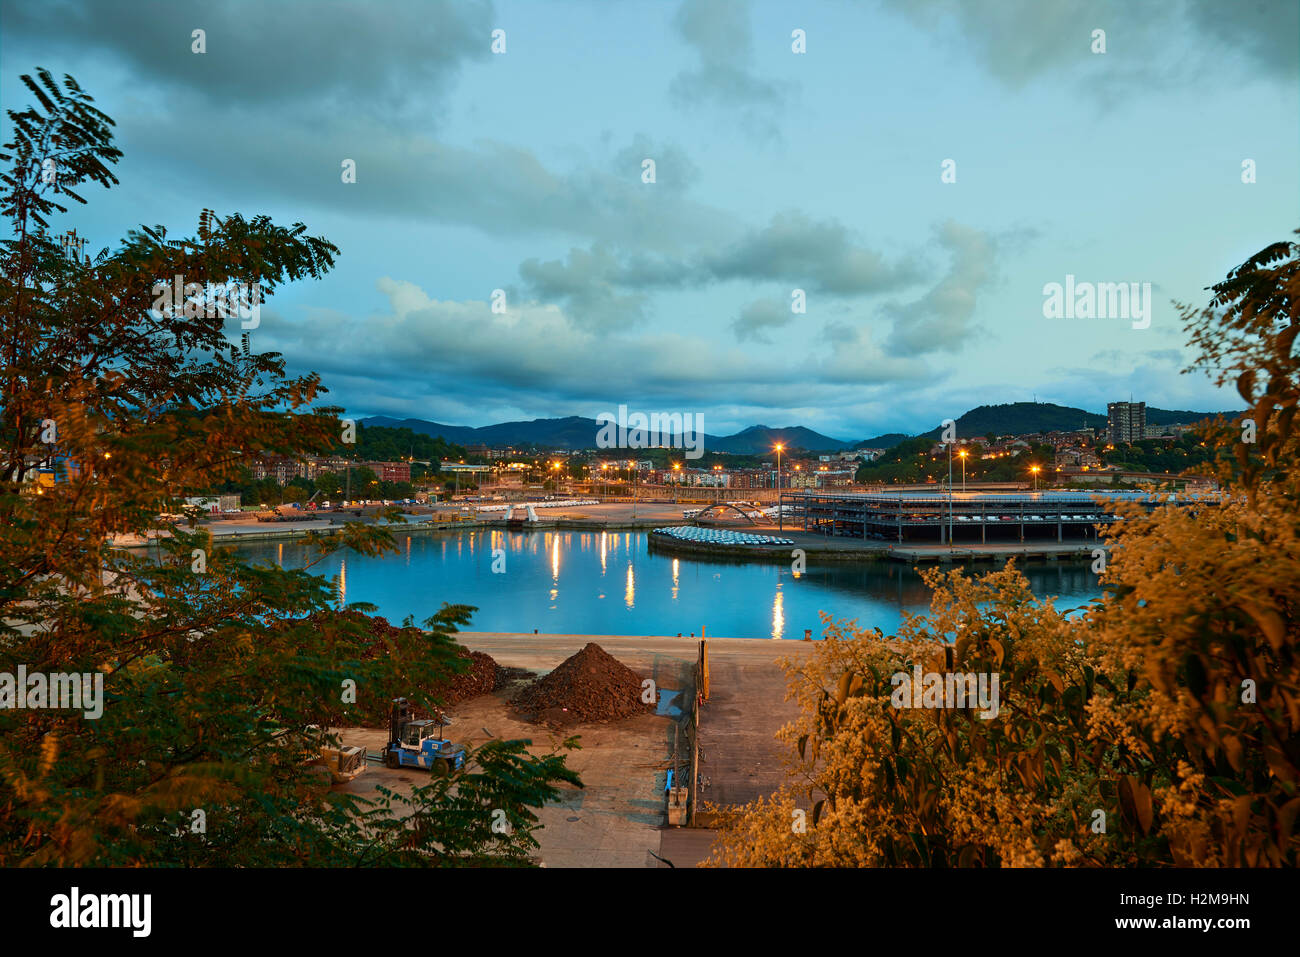 Port of Pasajes, Guipuzcoa, Basque Country, Euskadi, Euskal Herria, Spain, Europe - Stock Image